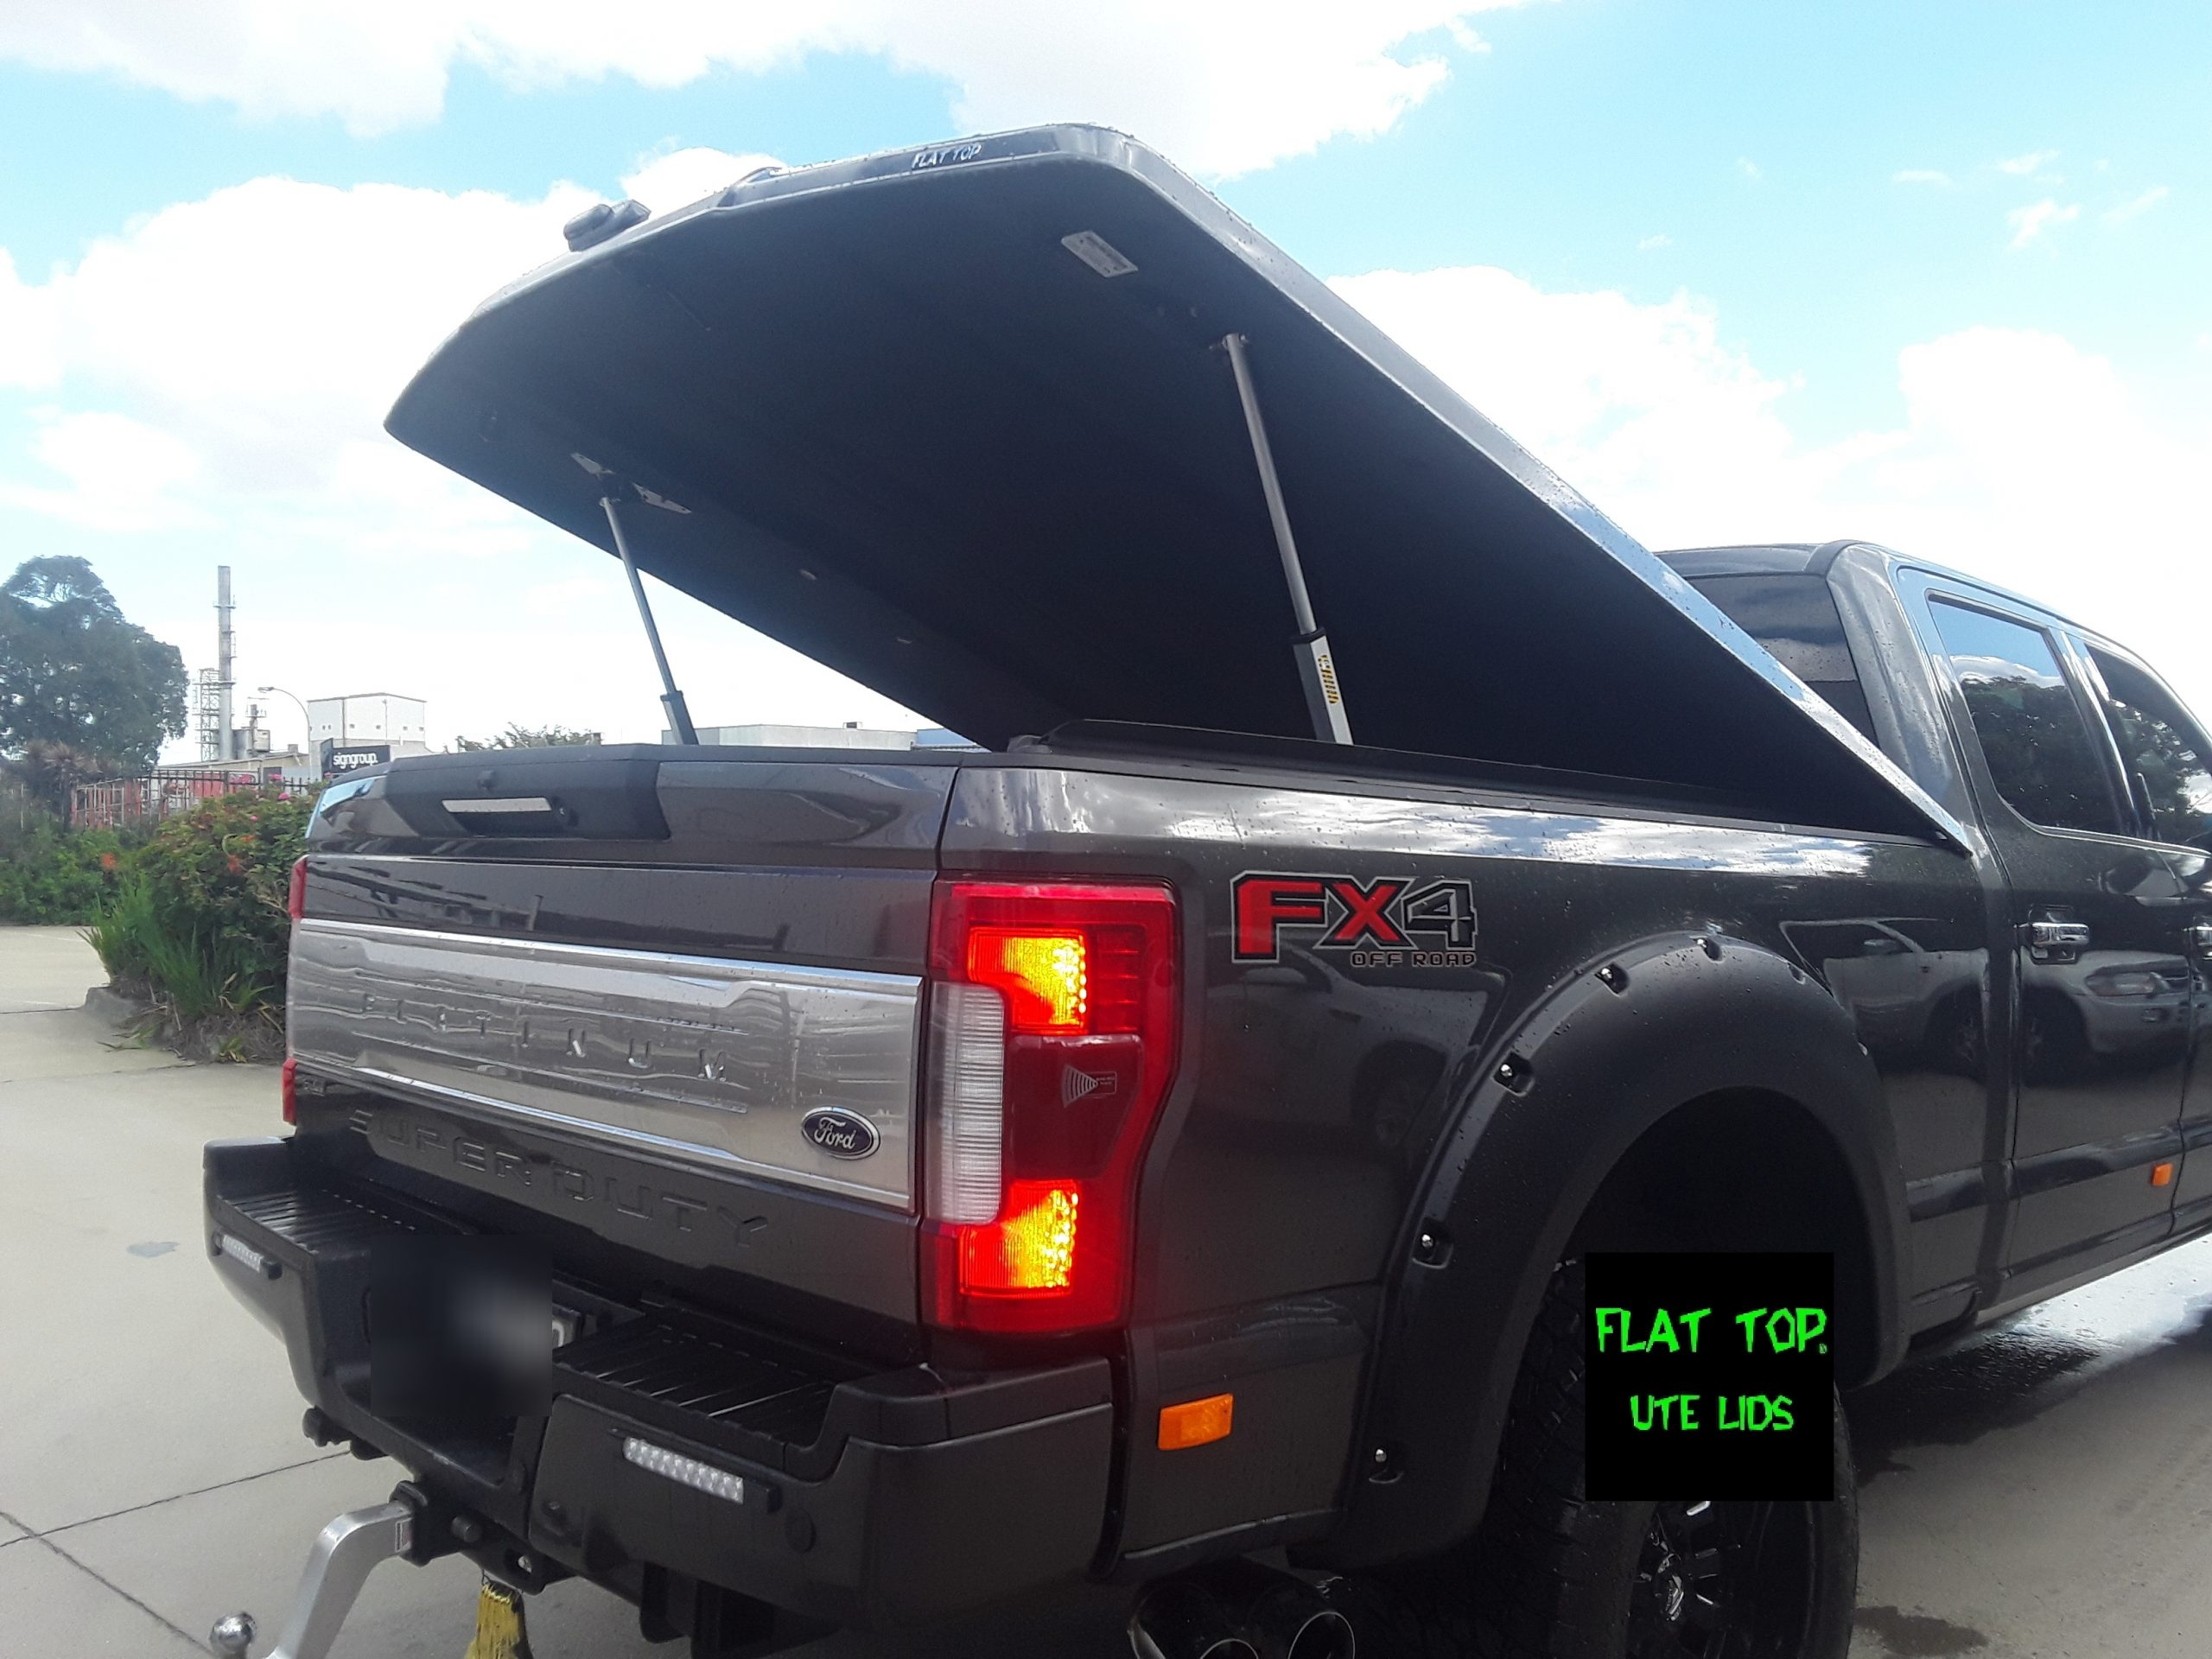 Pointers for buying a ute lid